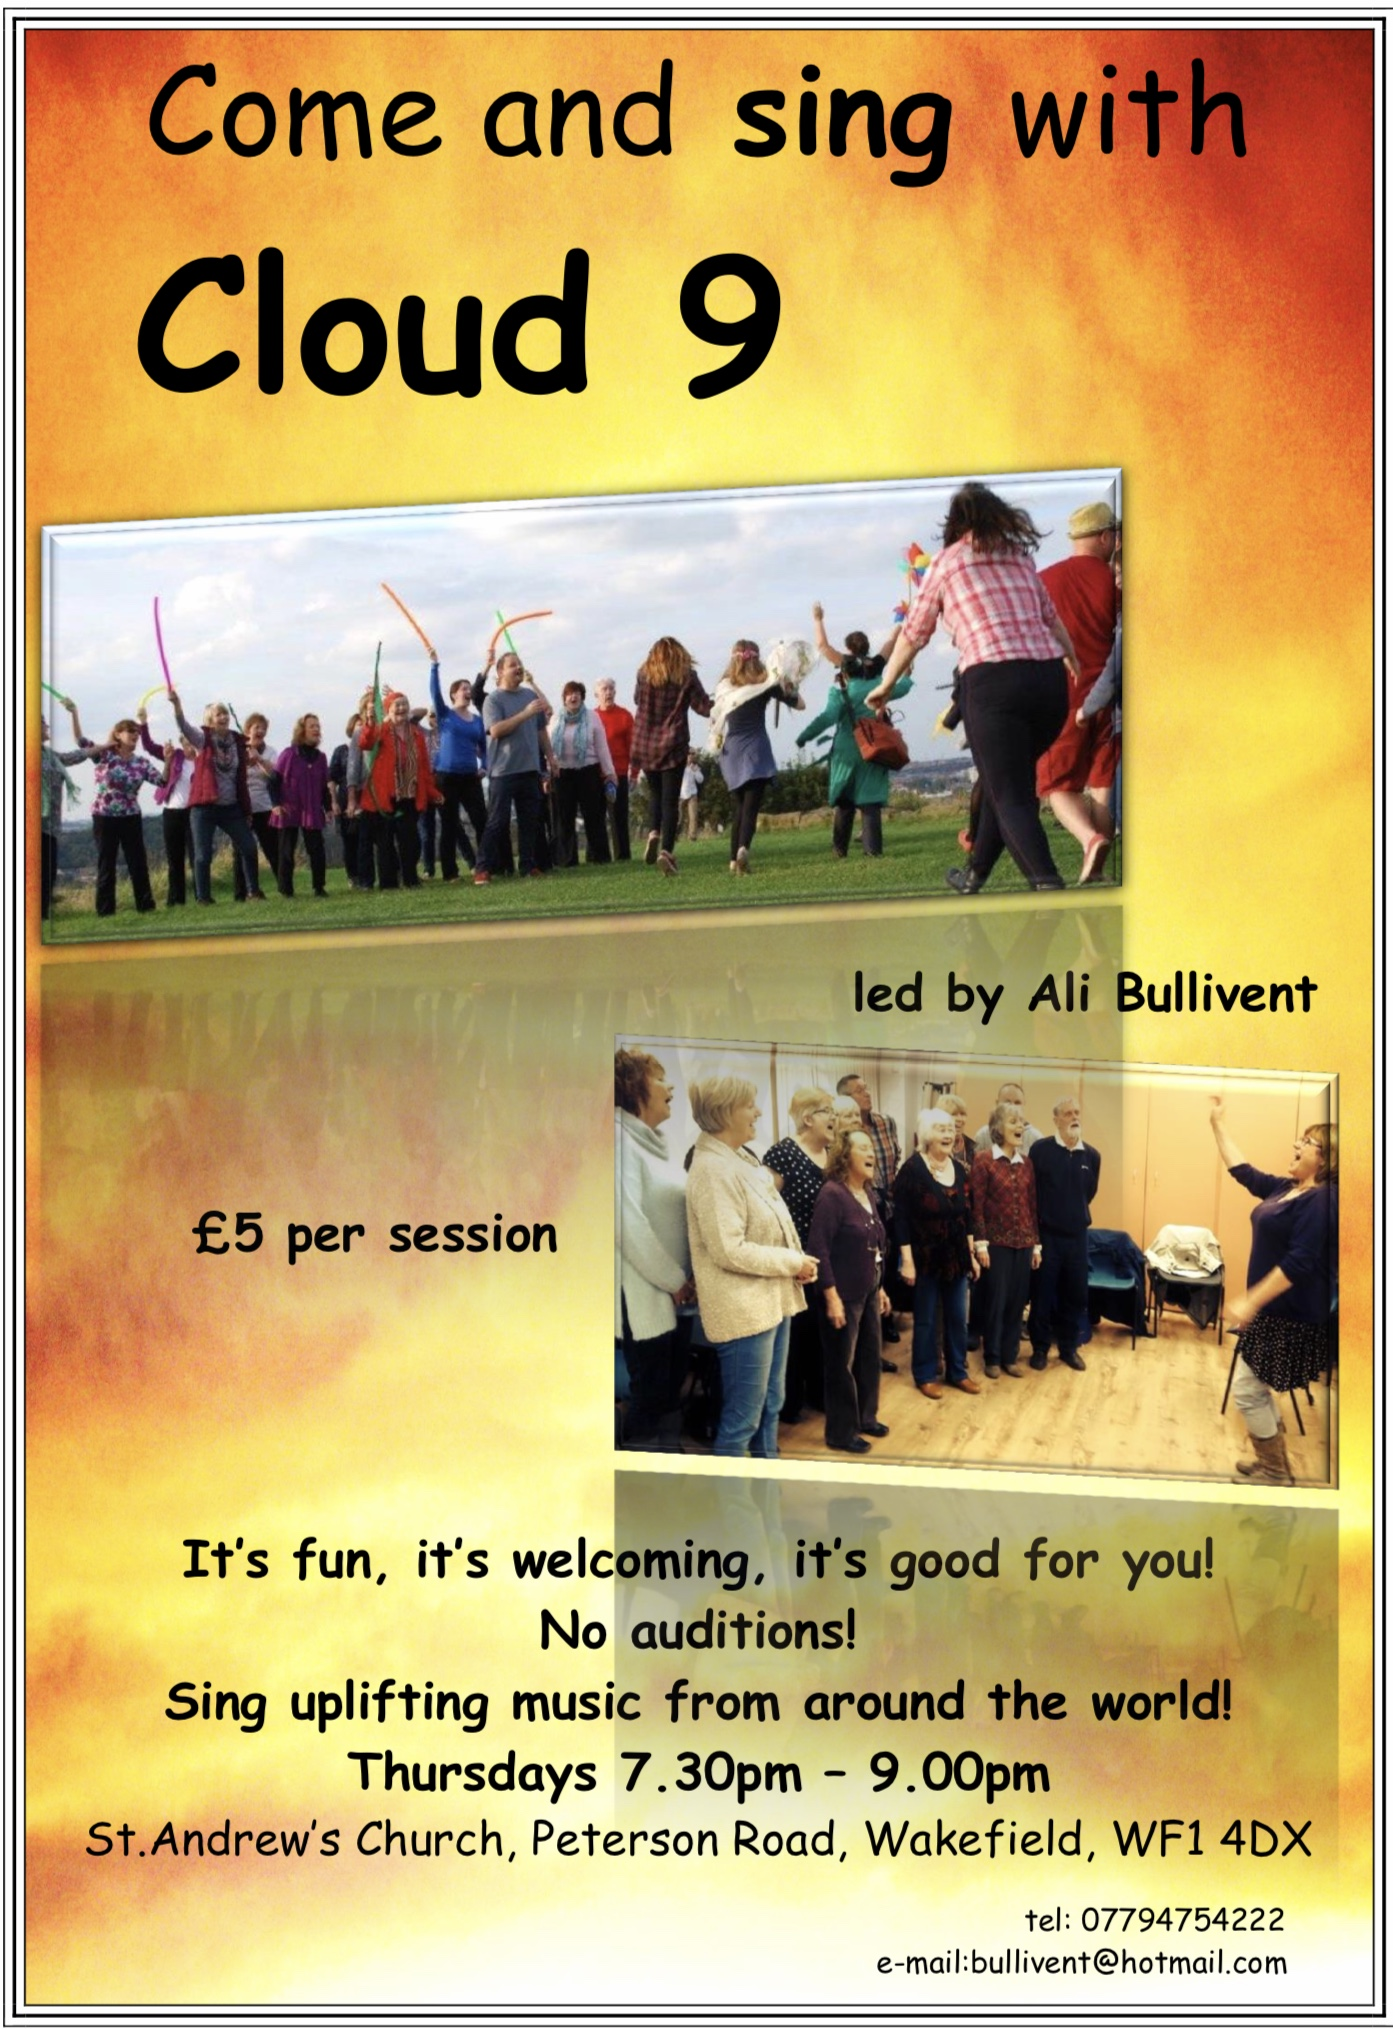 Cloud 9 Poster - alibullivent.co.uk